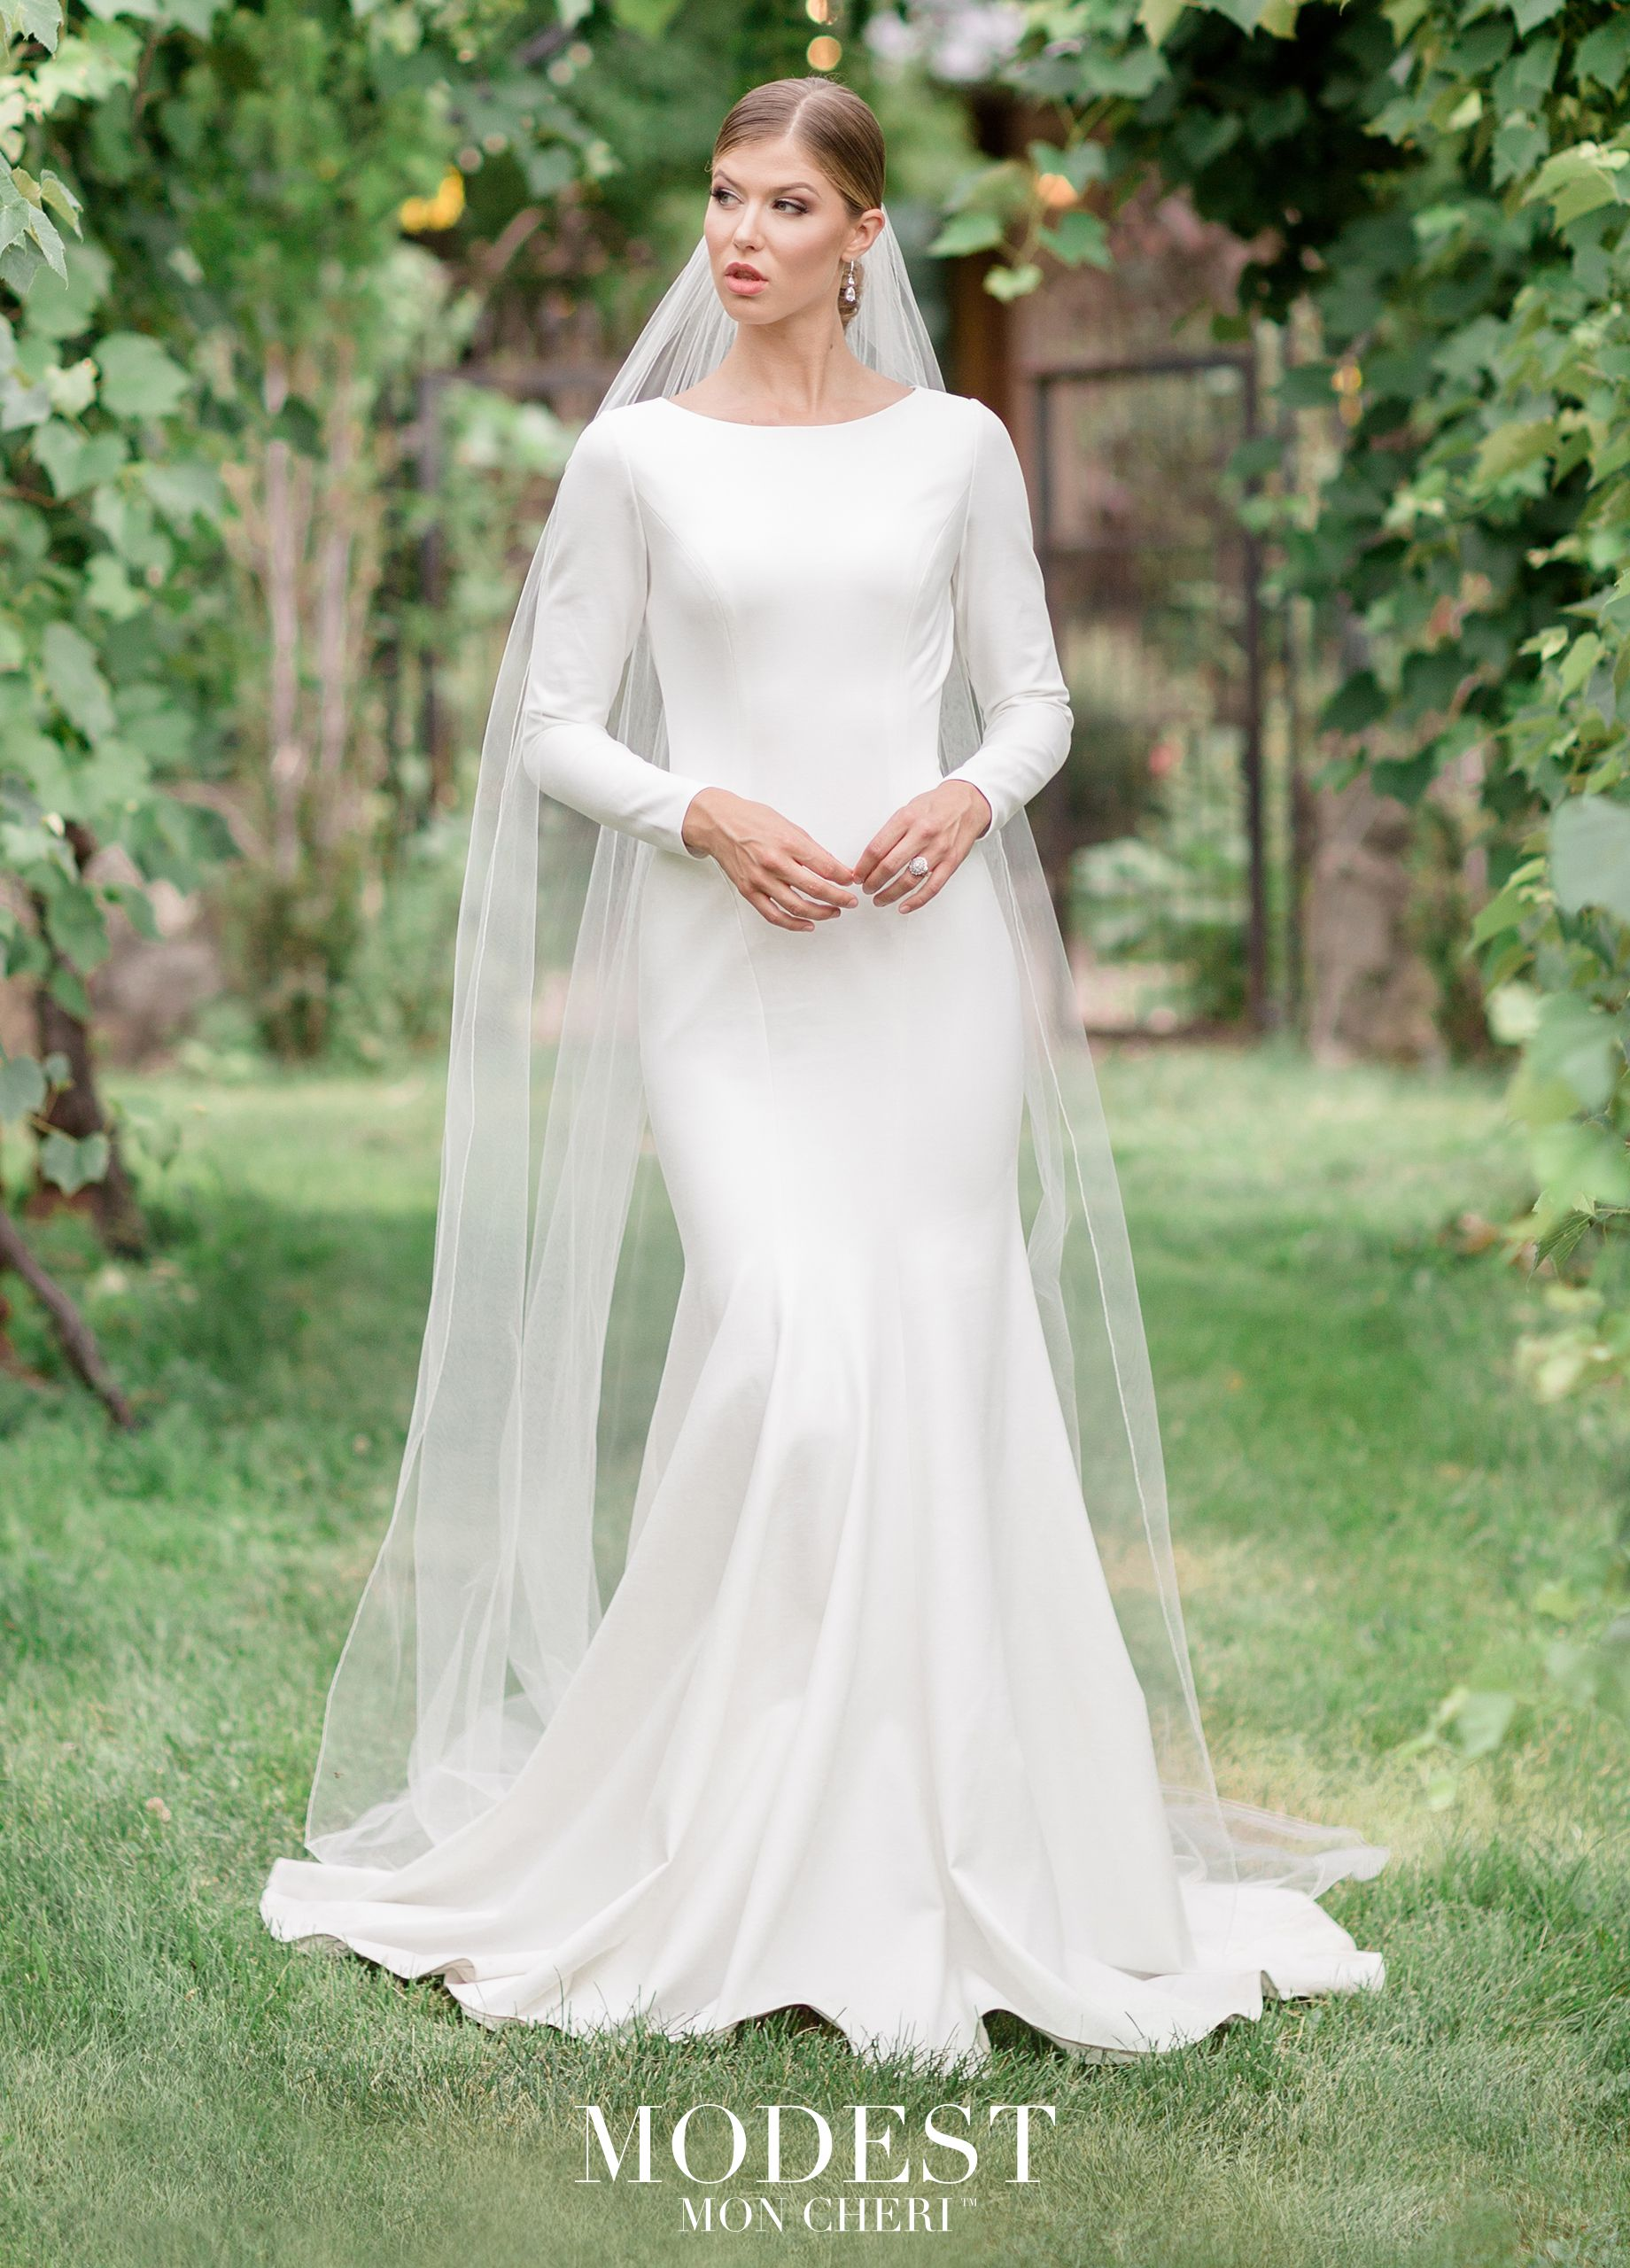 Modest Wedding Dresses Tr11988 Simple Elegant Stretch Jersey Mermaid Gown Features Long Sleeves Scoop Neckline Princess Seams Zipper Back With